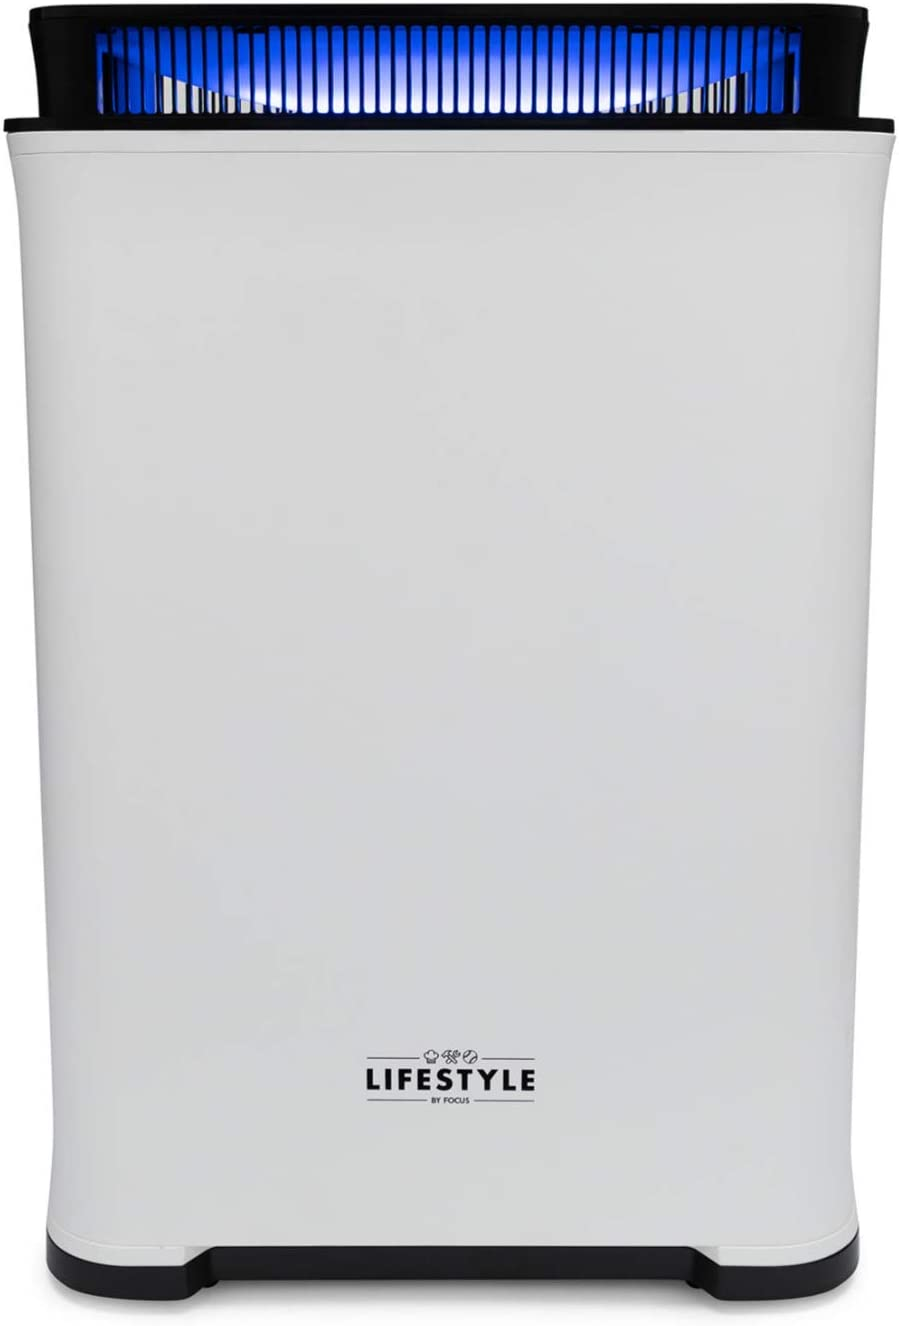 Lifestyle by Focus LS-AP350 PURA Max Air Purifier and Humidifier with True HEPA Filter, Odor Allergies Eliminator for Smoke, Dust, Mold, Home and Pets with Optional Night Light and Child Lock